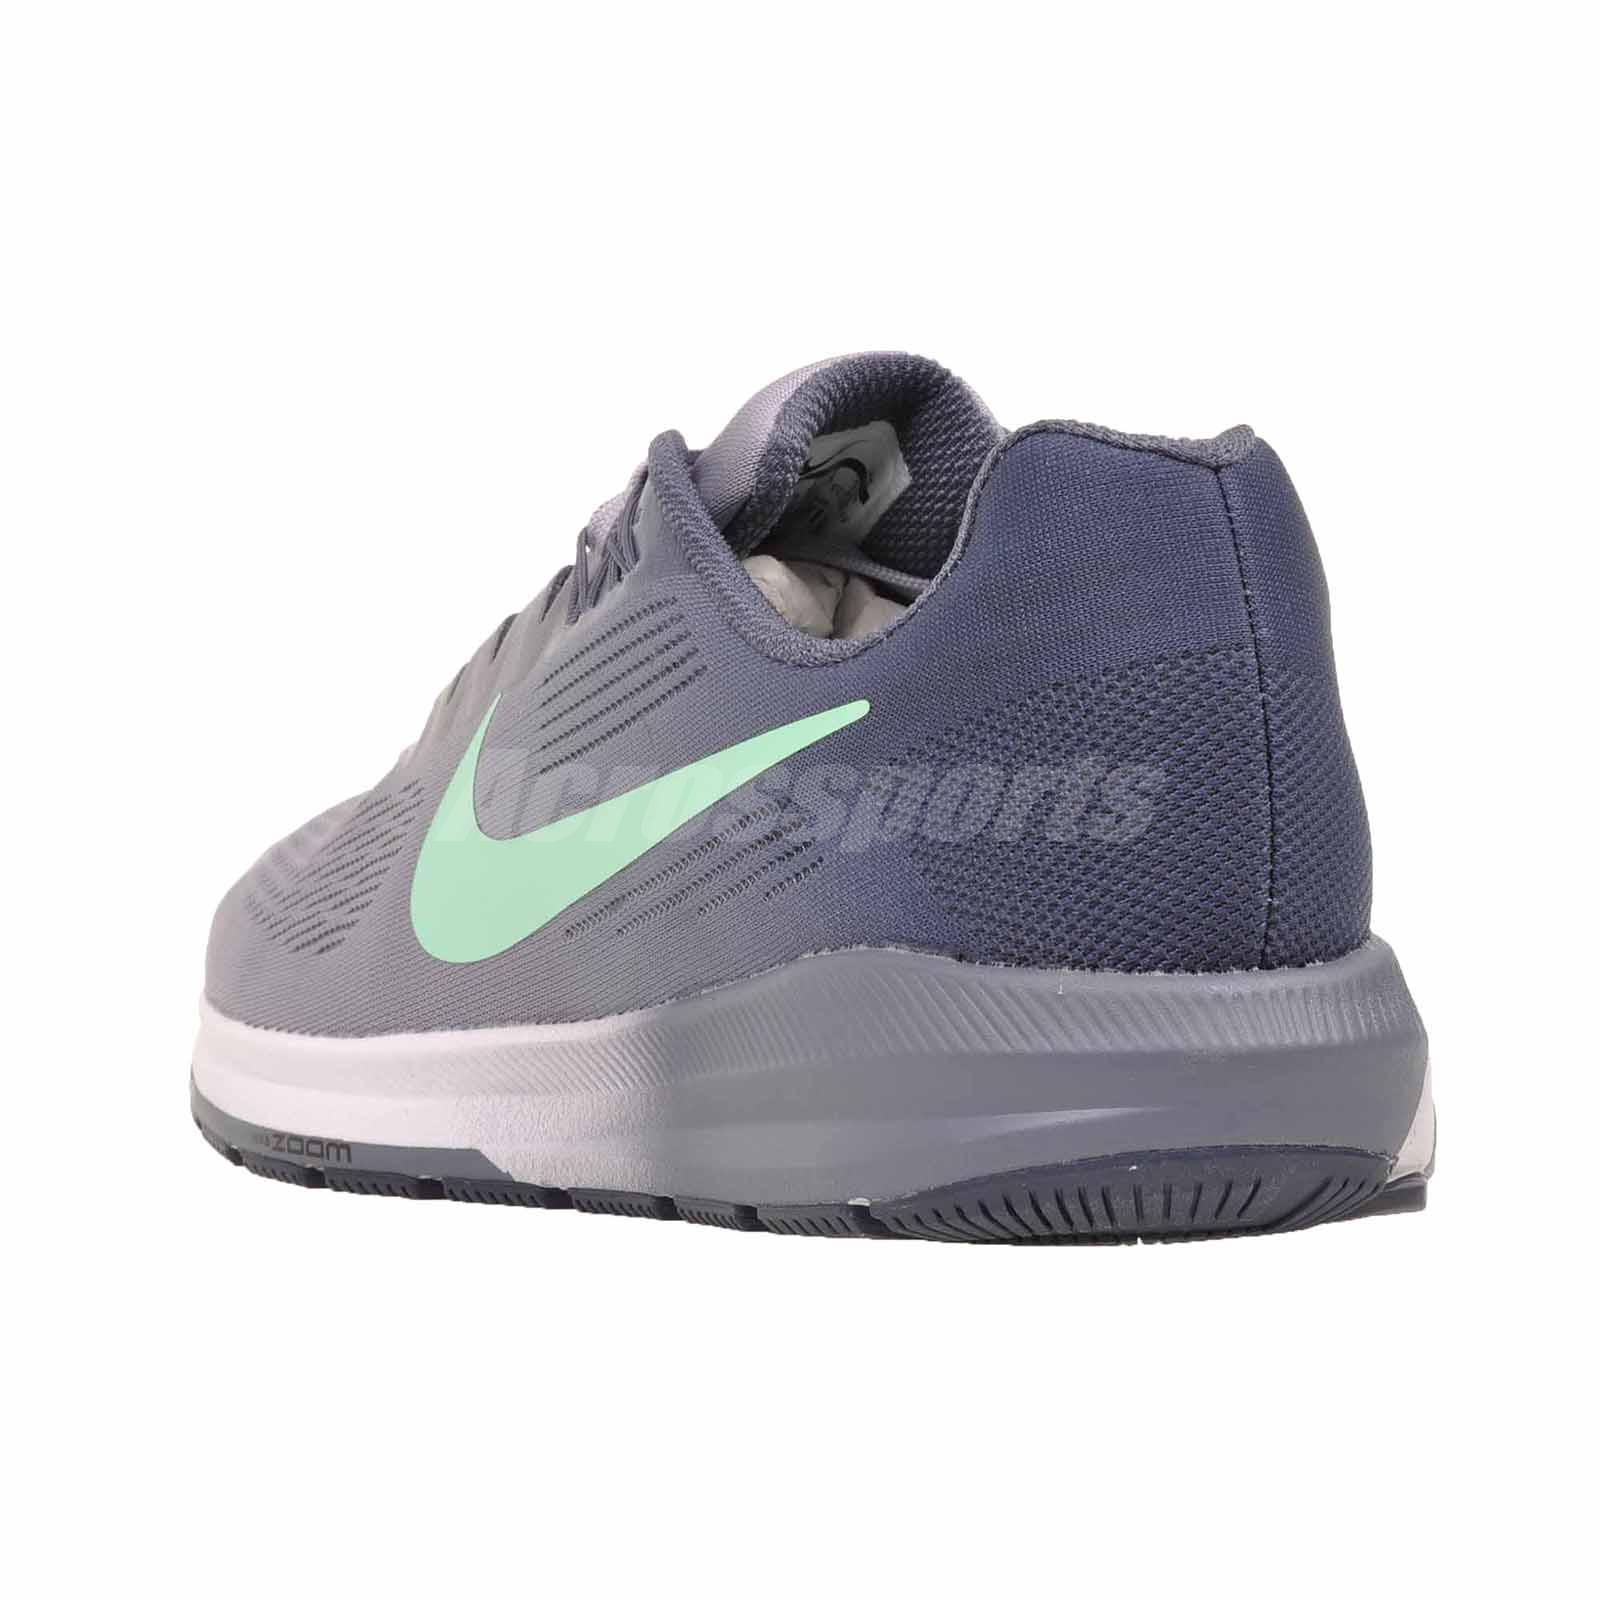 detailed look d102a e1793 Nike W Air Zoom Structure 21 Womens Running Shoes Purple 904701-503 ...